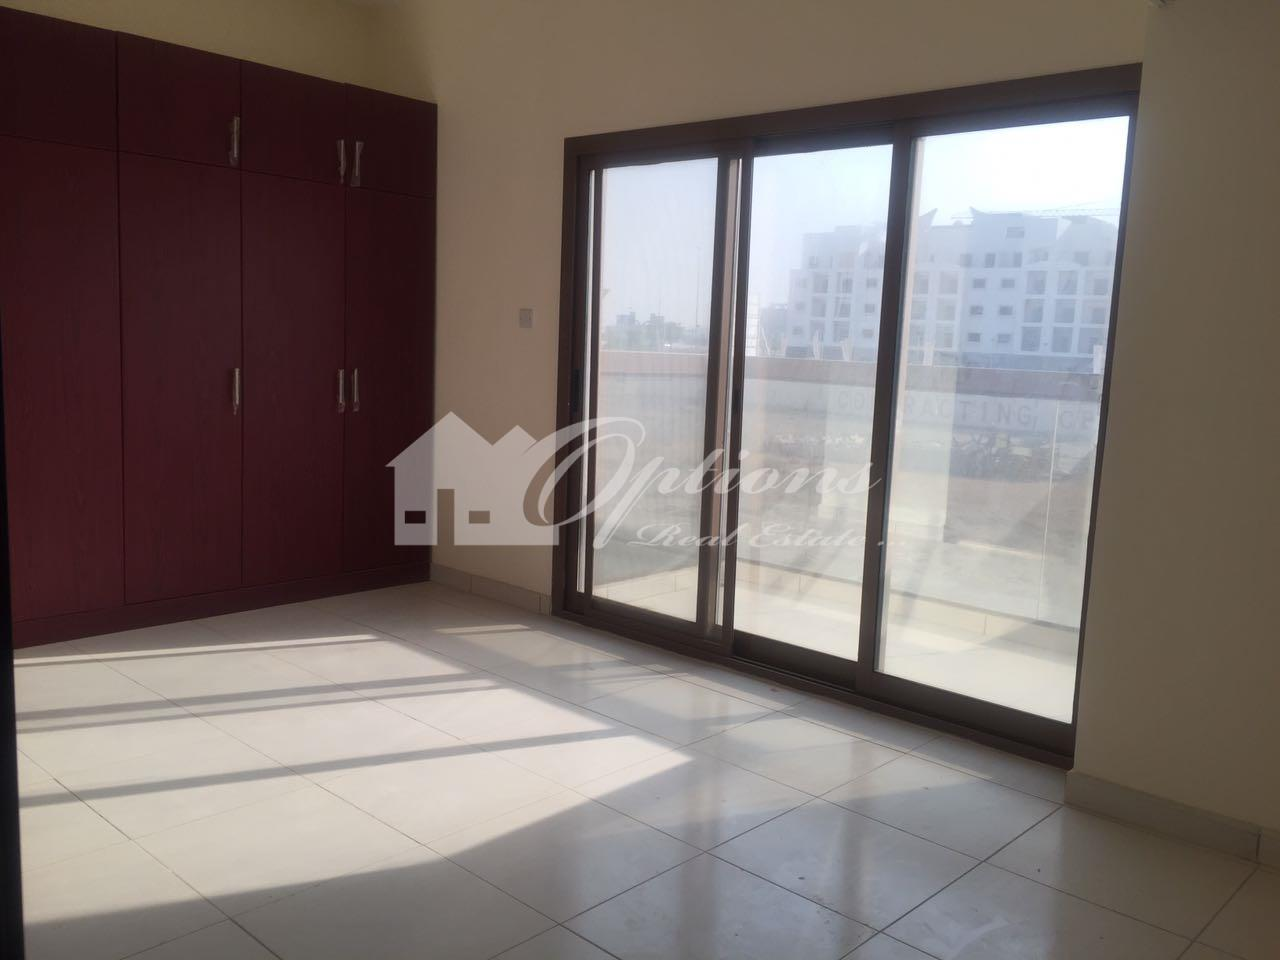 Unfurnished Two Br Apartment In Jvt With Balcony